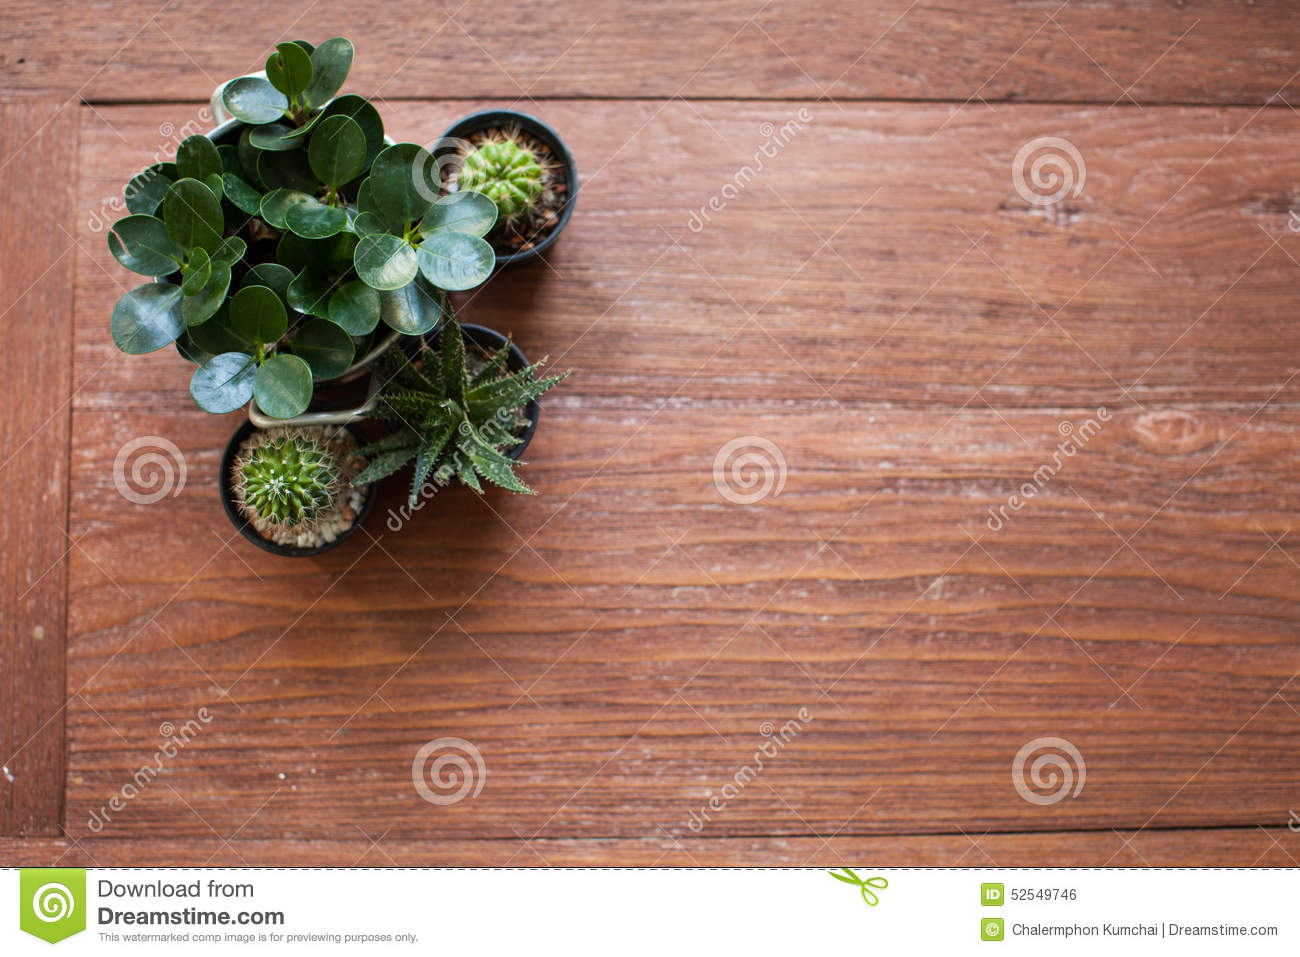 Succulent or cactus on wooden table royalty free stock for Wooden cactus planter